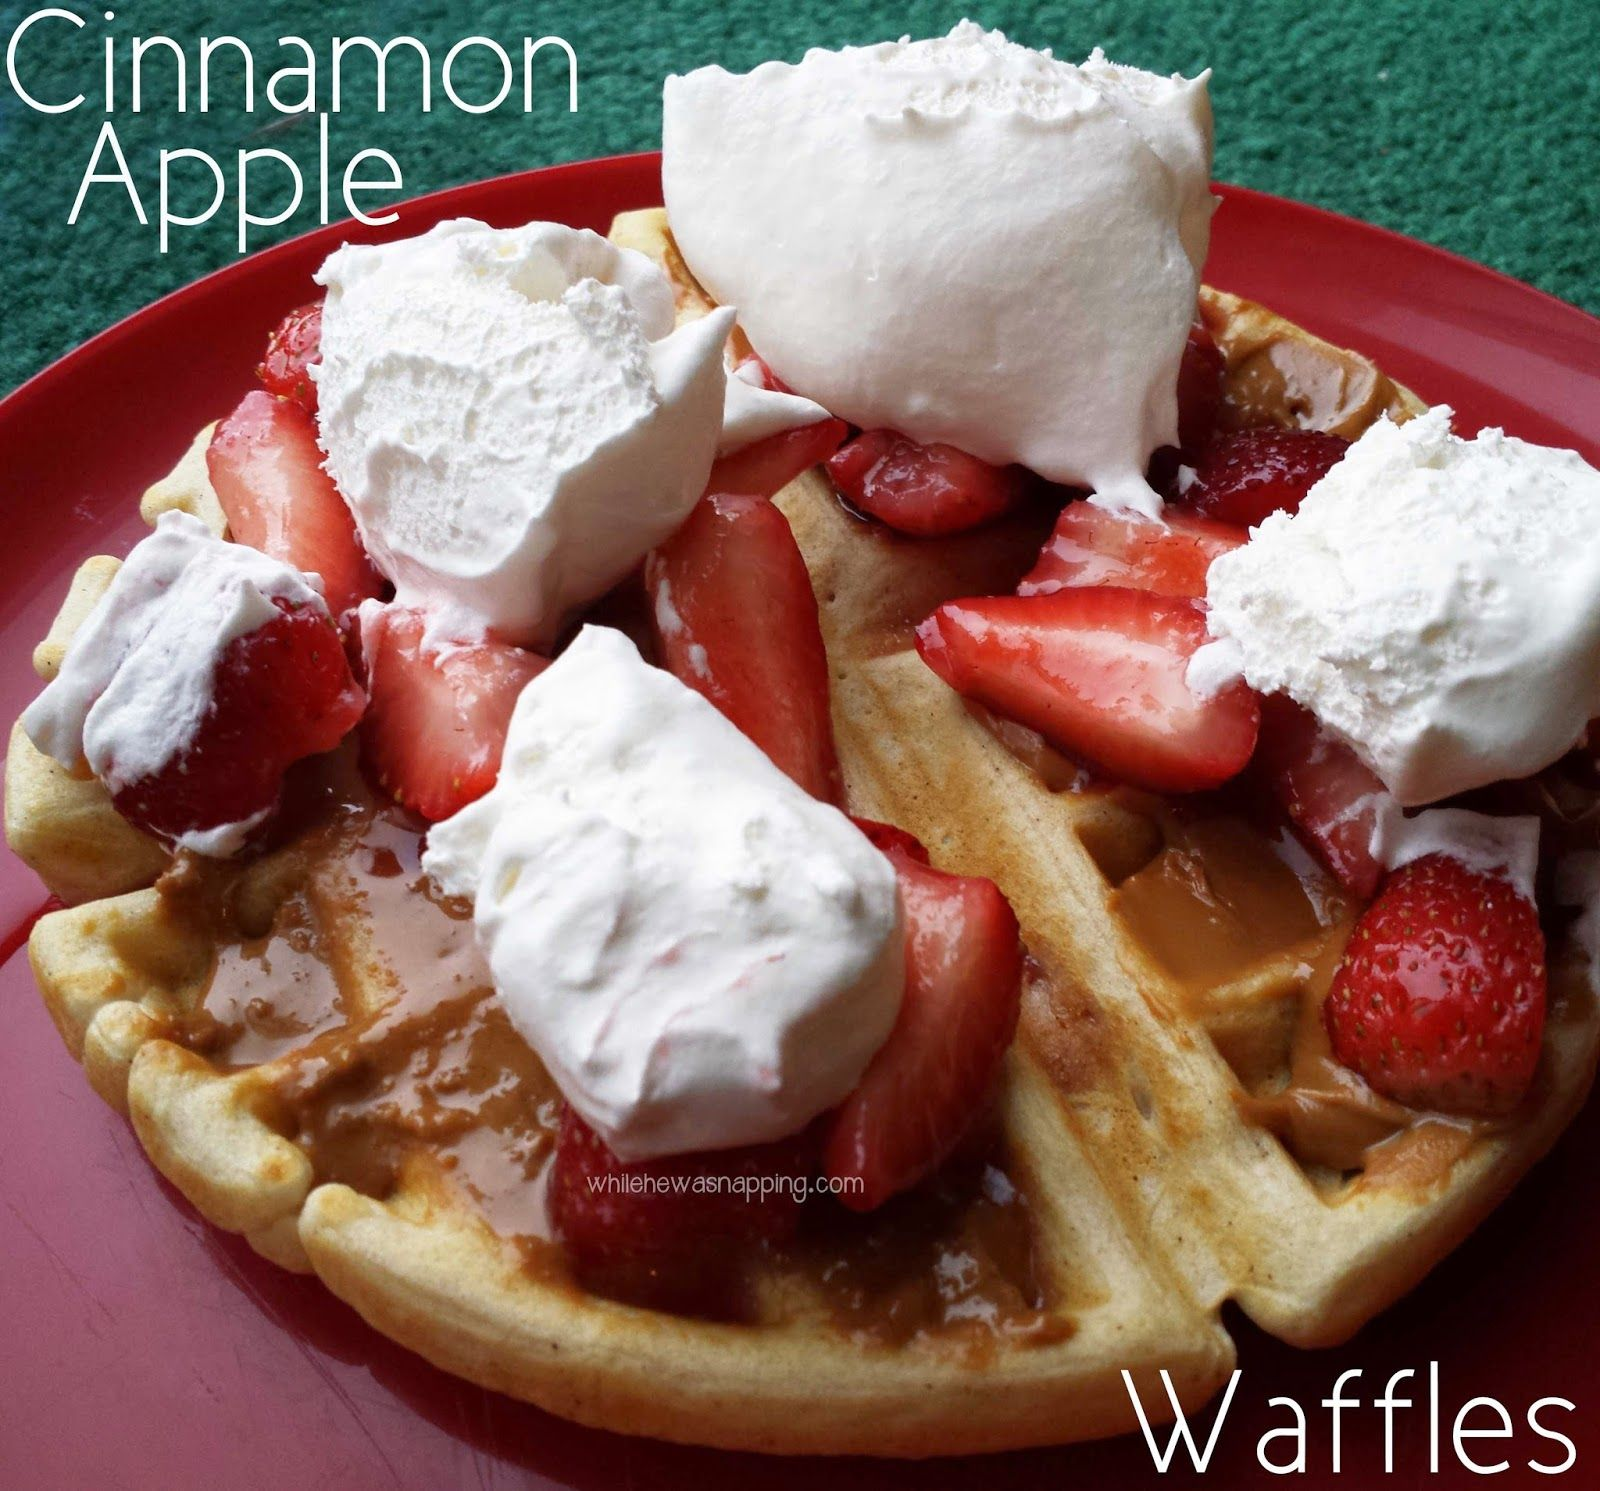 While He Was Napping: Cinnamon Apple Waffles